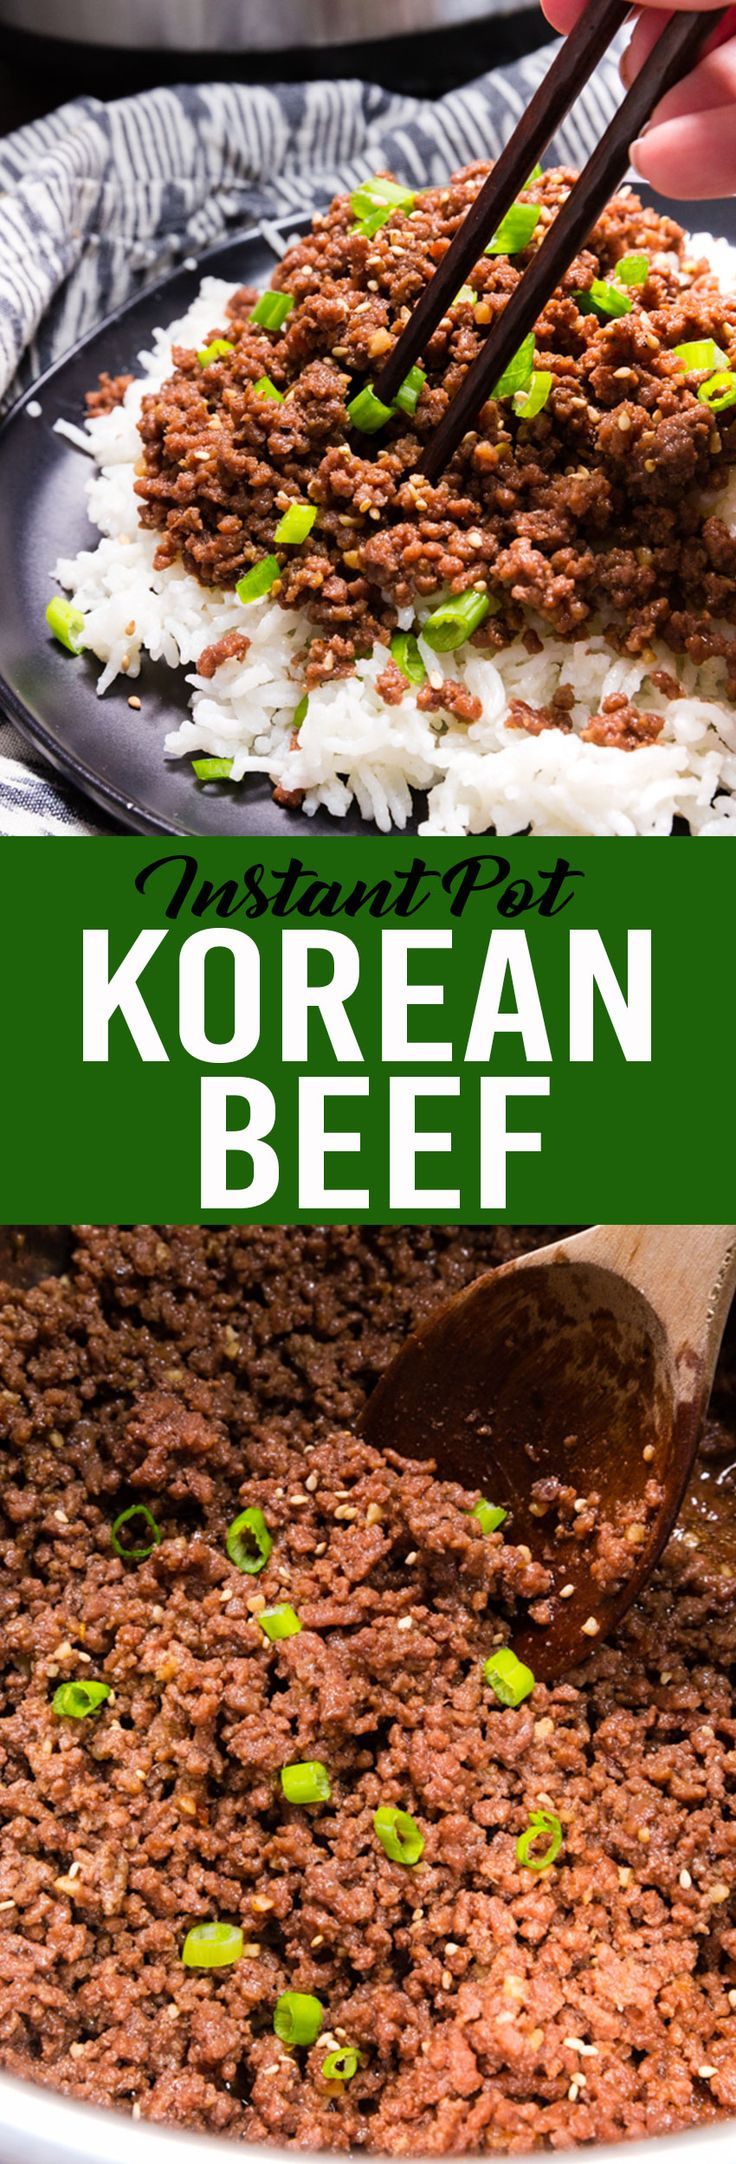 Easy to make sweet and spicy Korean Beef made in the instant pot pressure cooker #pressurecooker #instantpotrecipe #koreanbeef #beefdinner #easydinner